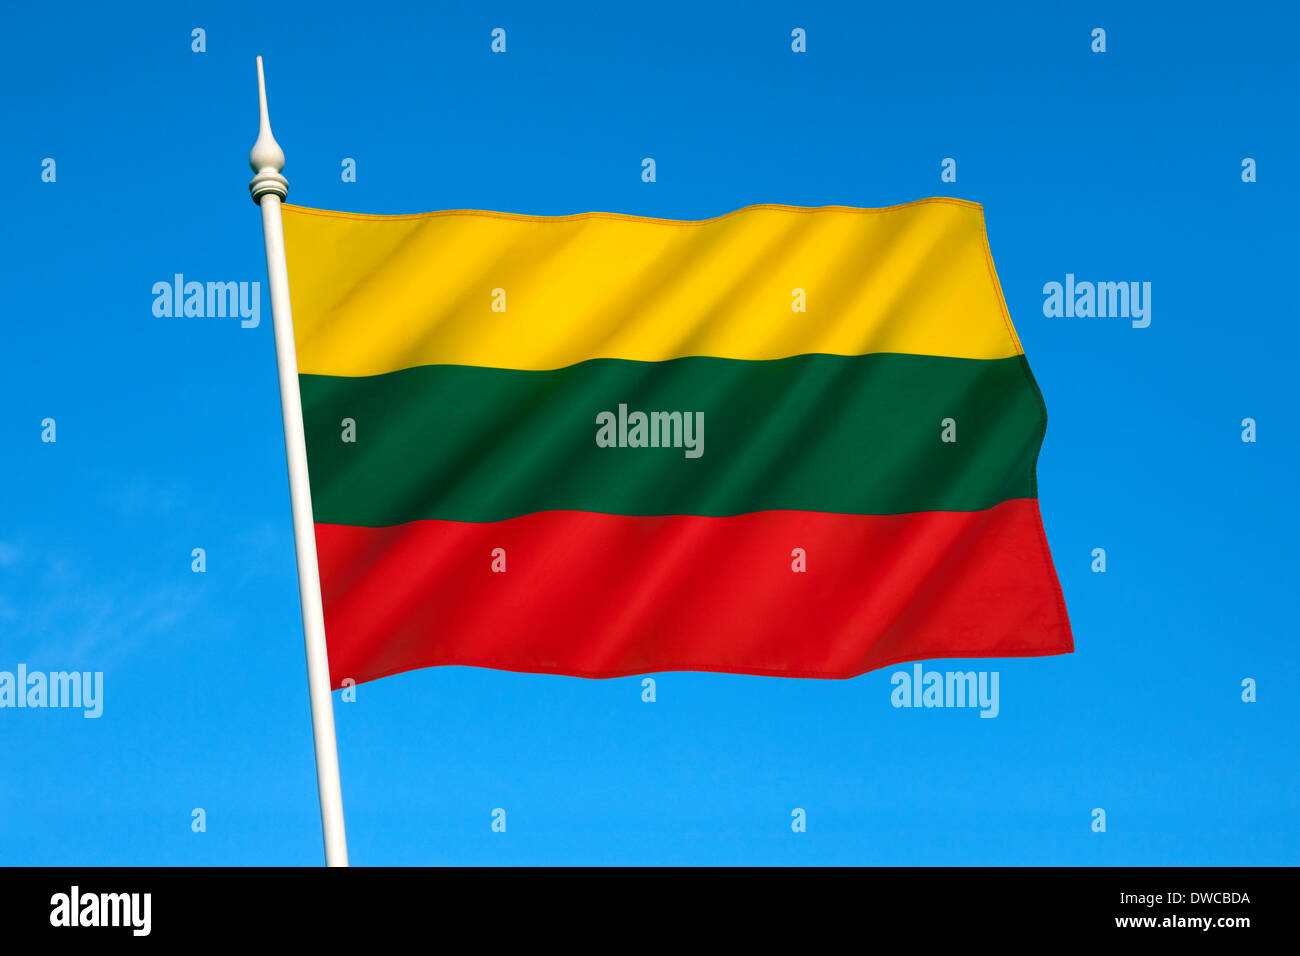 Flag of Lithuania - Stock Image